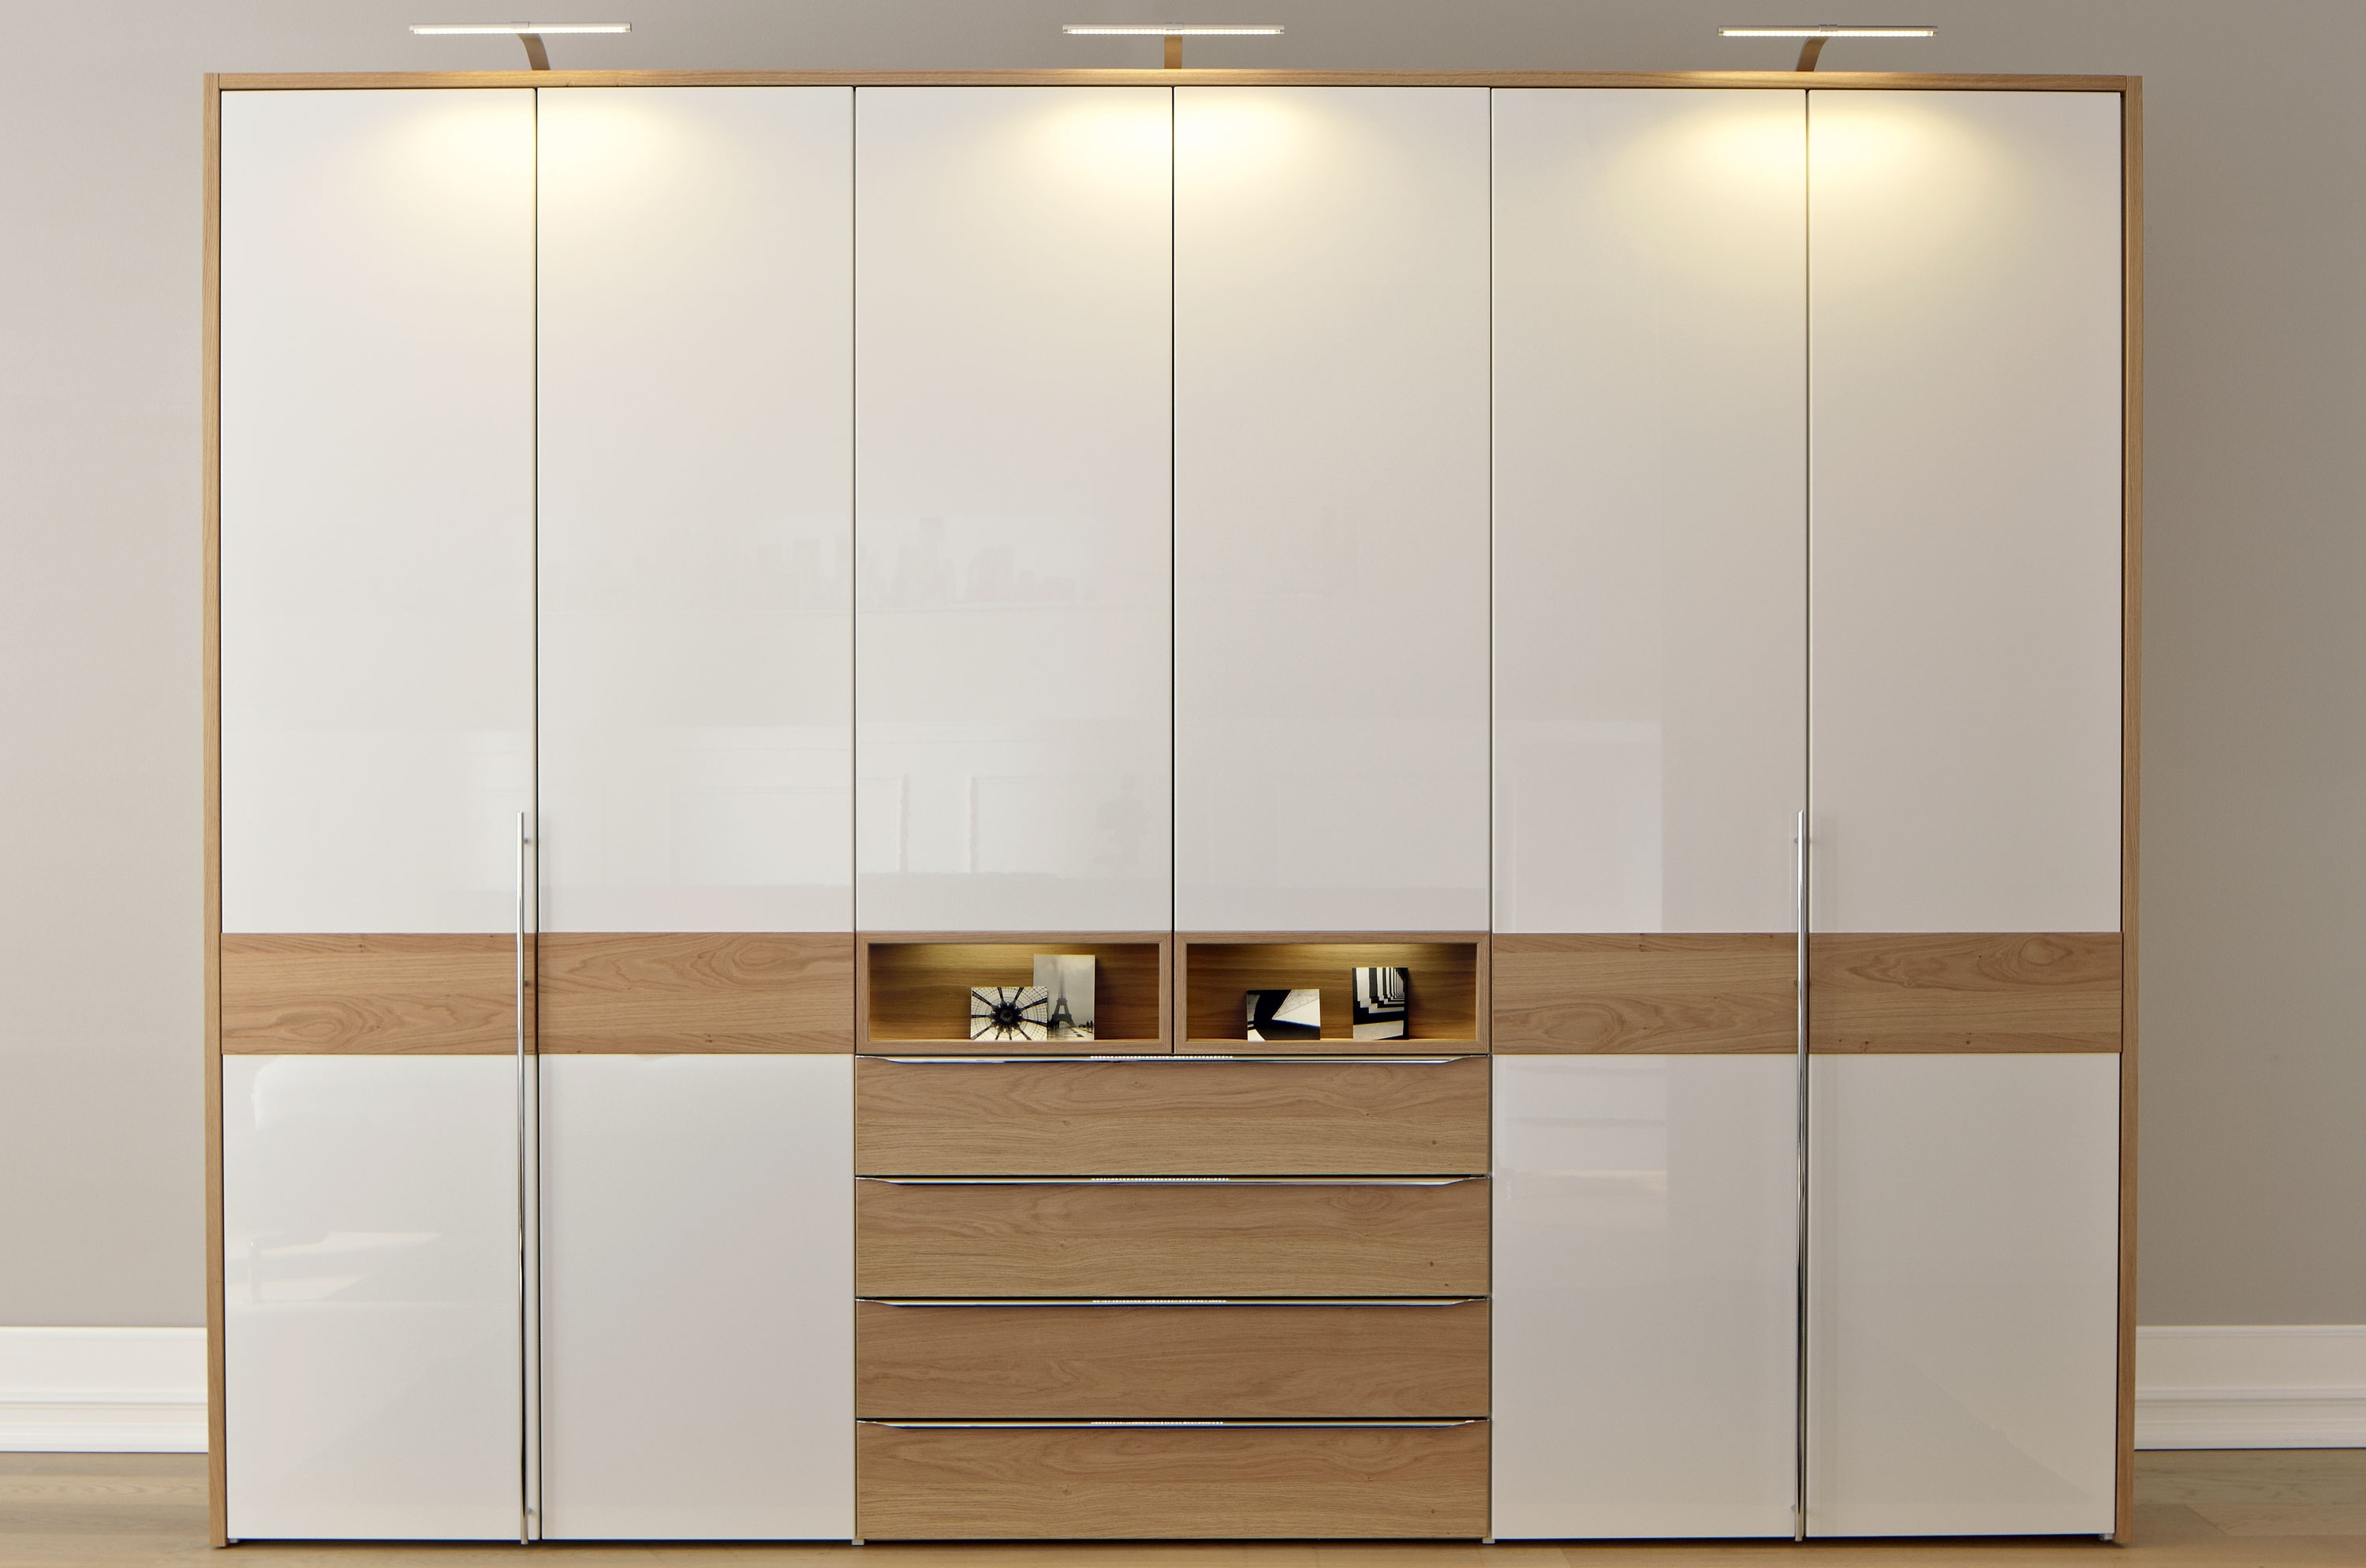 Oak And White Wardrobes Within Favorite We Would Like To Install A Wardrobe Into An Existing Cabinet (View 3 of 15)